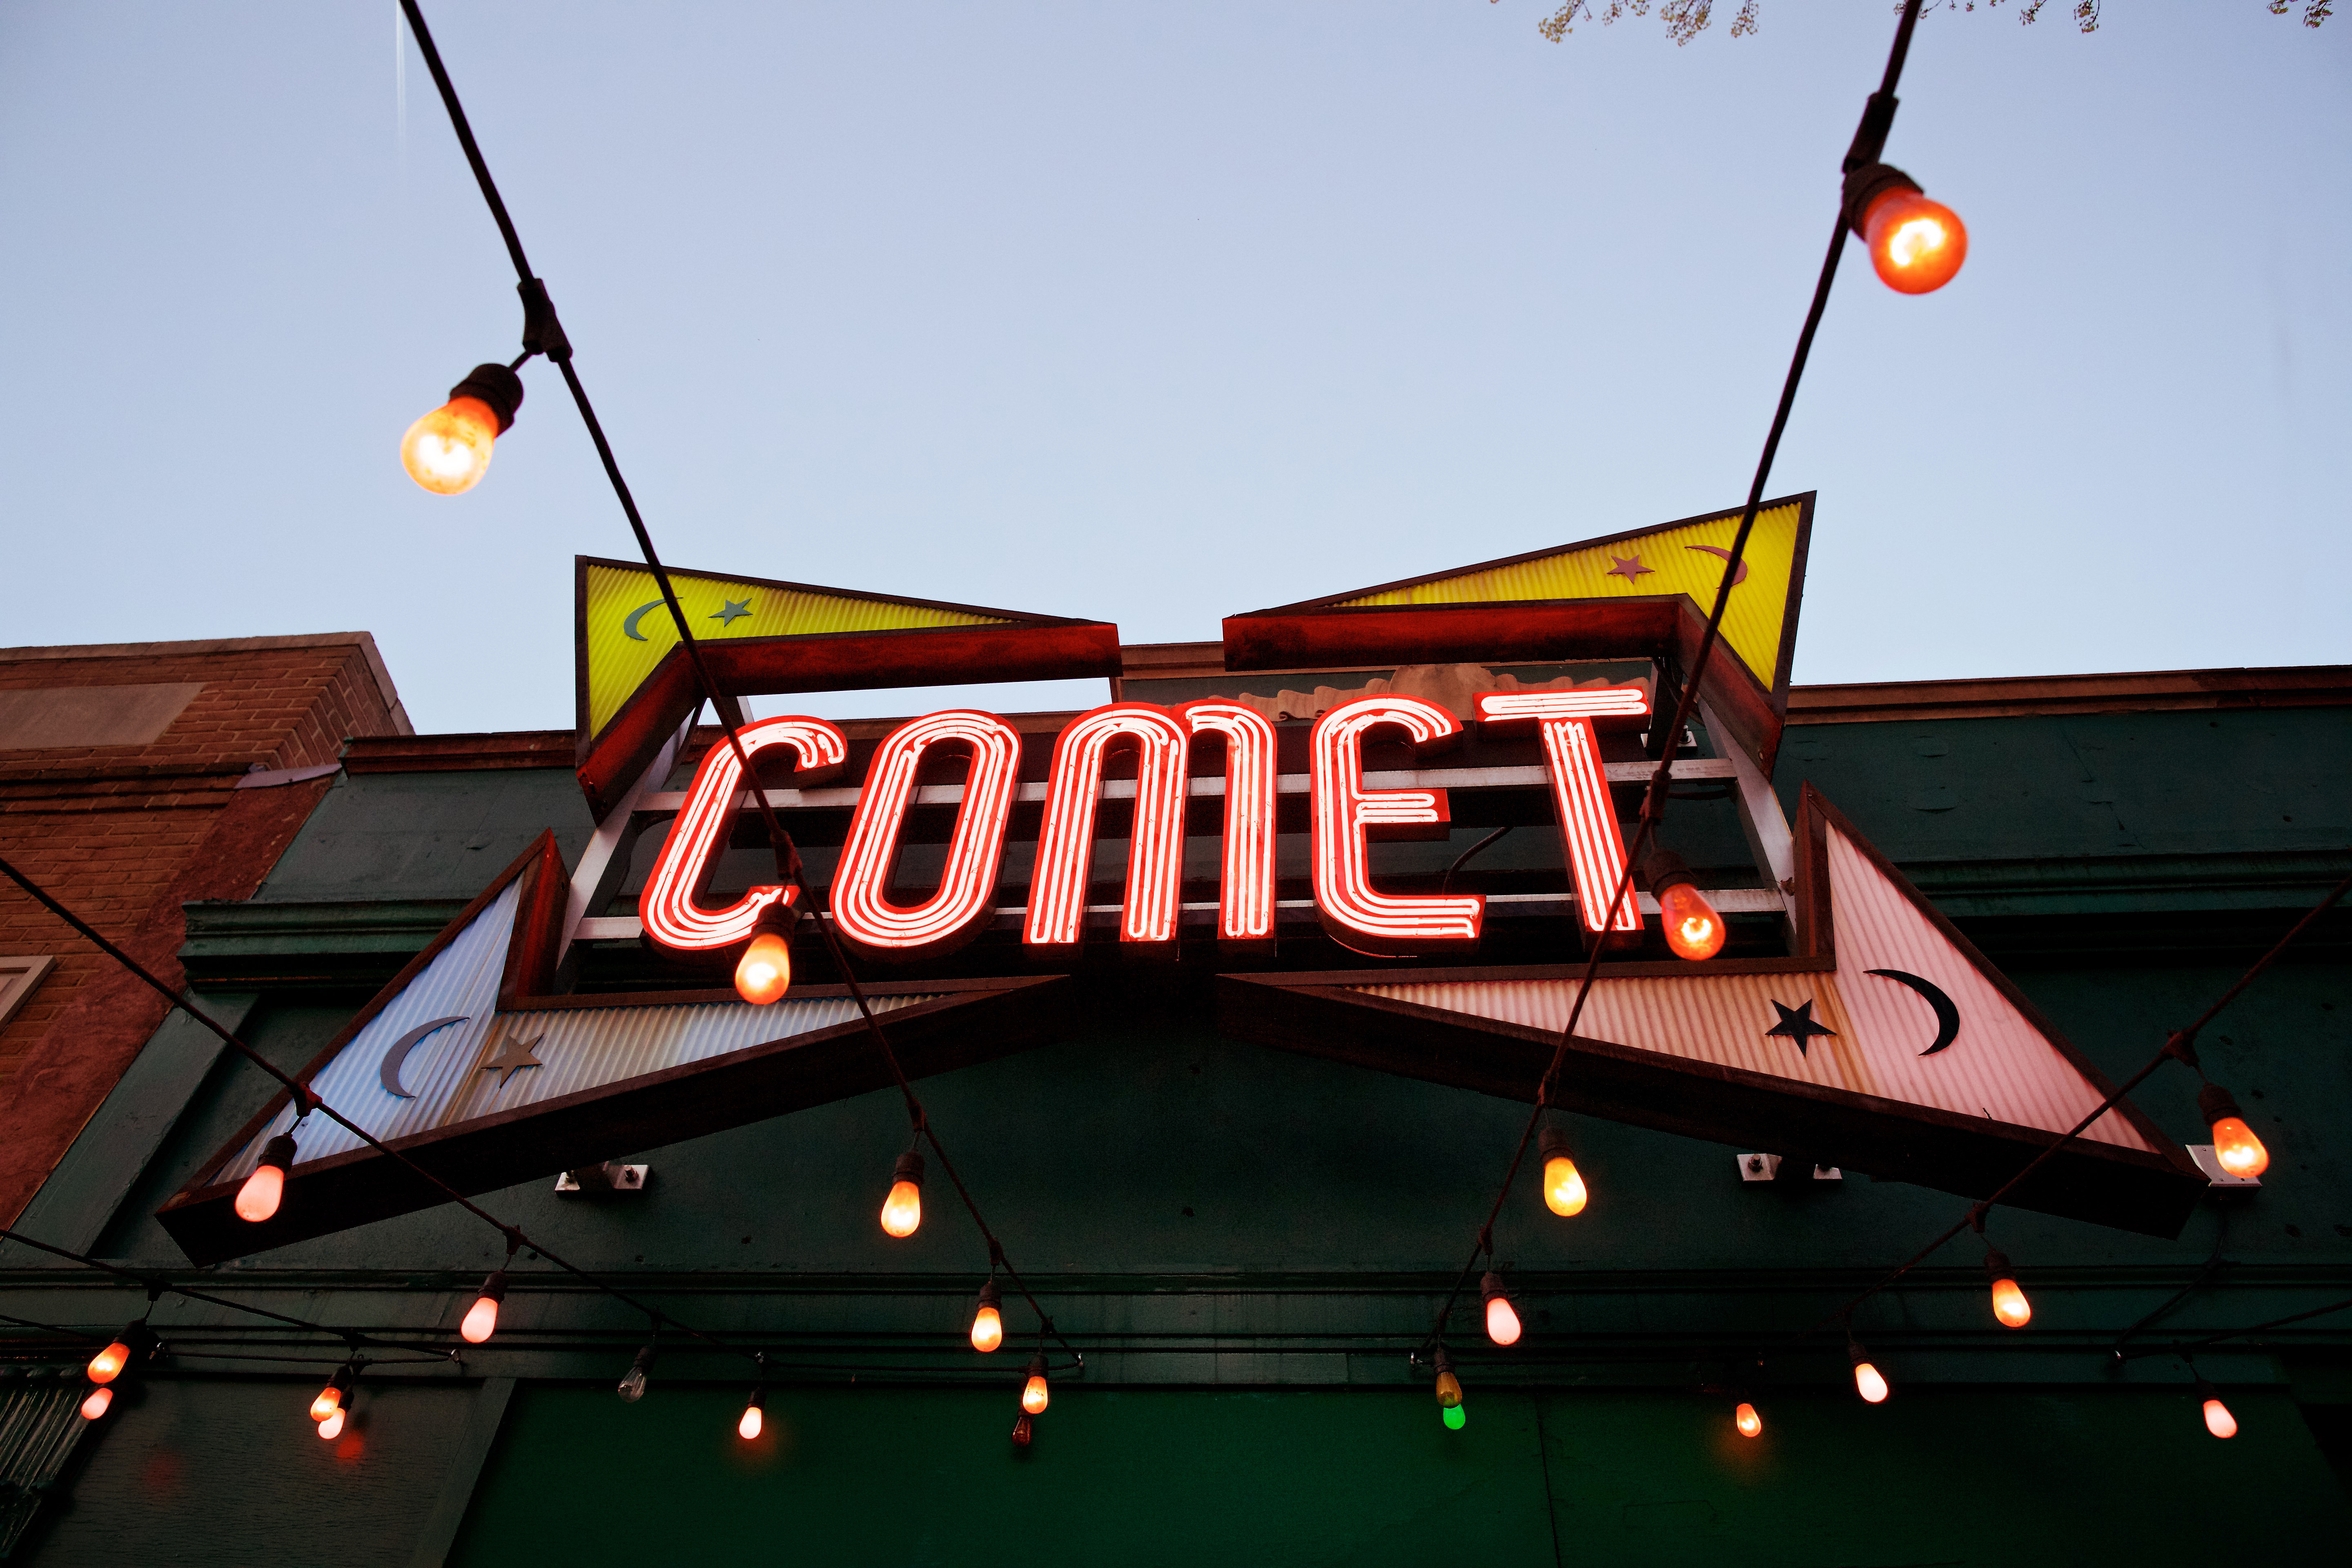 Exterior of Comet Ping Pong photographed in Washington, DC.